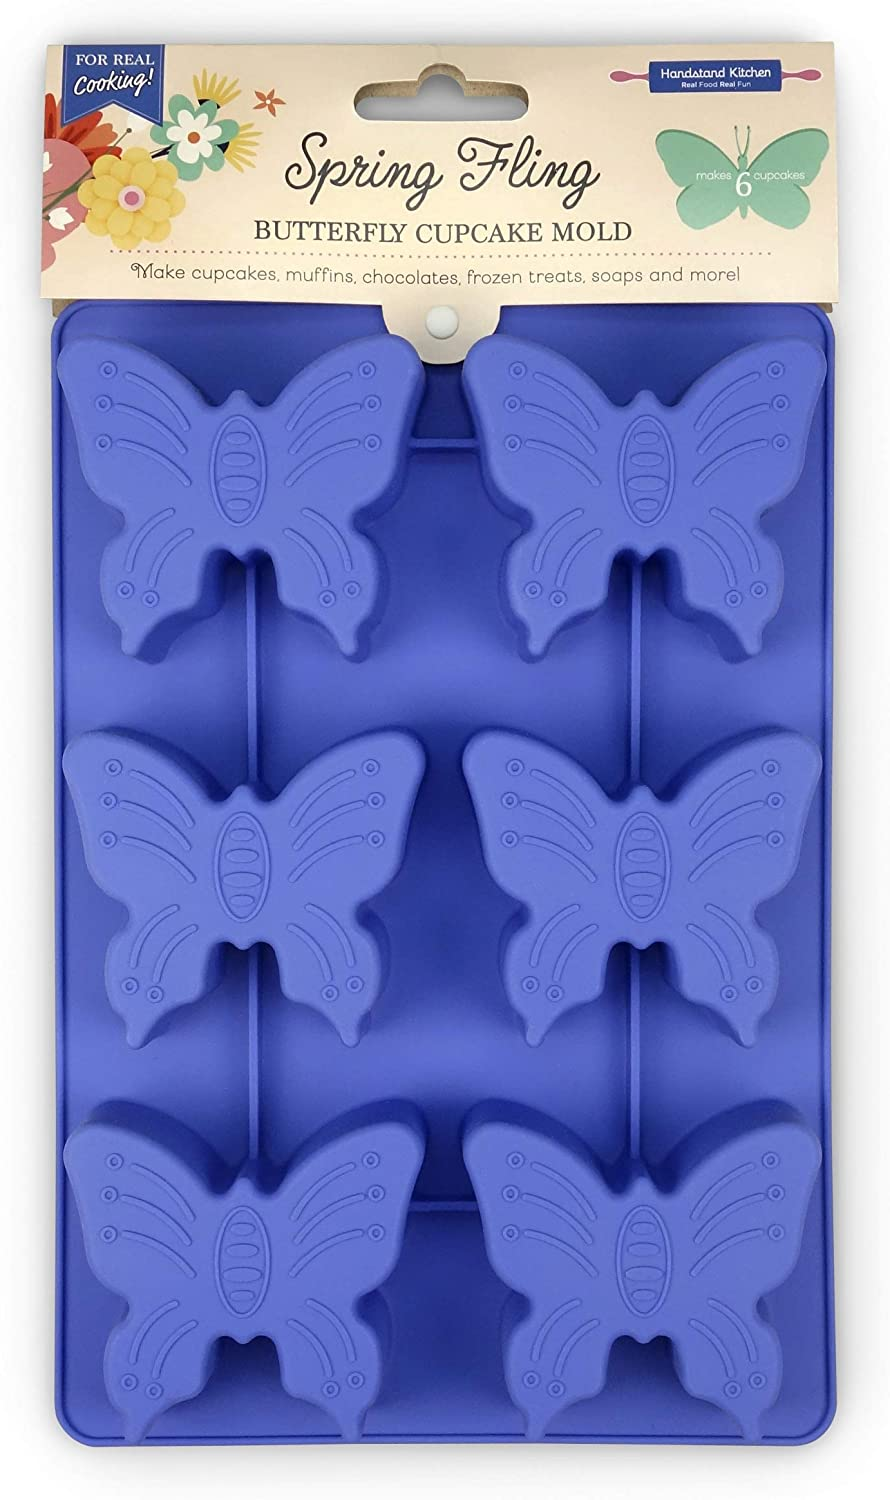 Handstand Kitchen Spring Fling Silicon Shaped 100% quality warranty! Butterfly Lowest price challenge Silicone